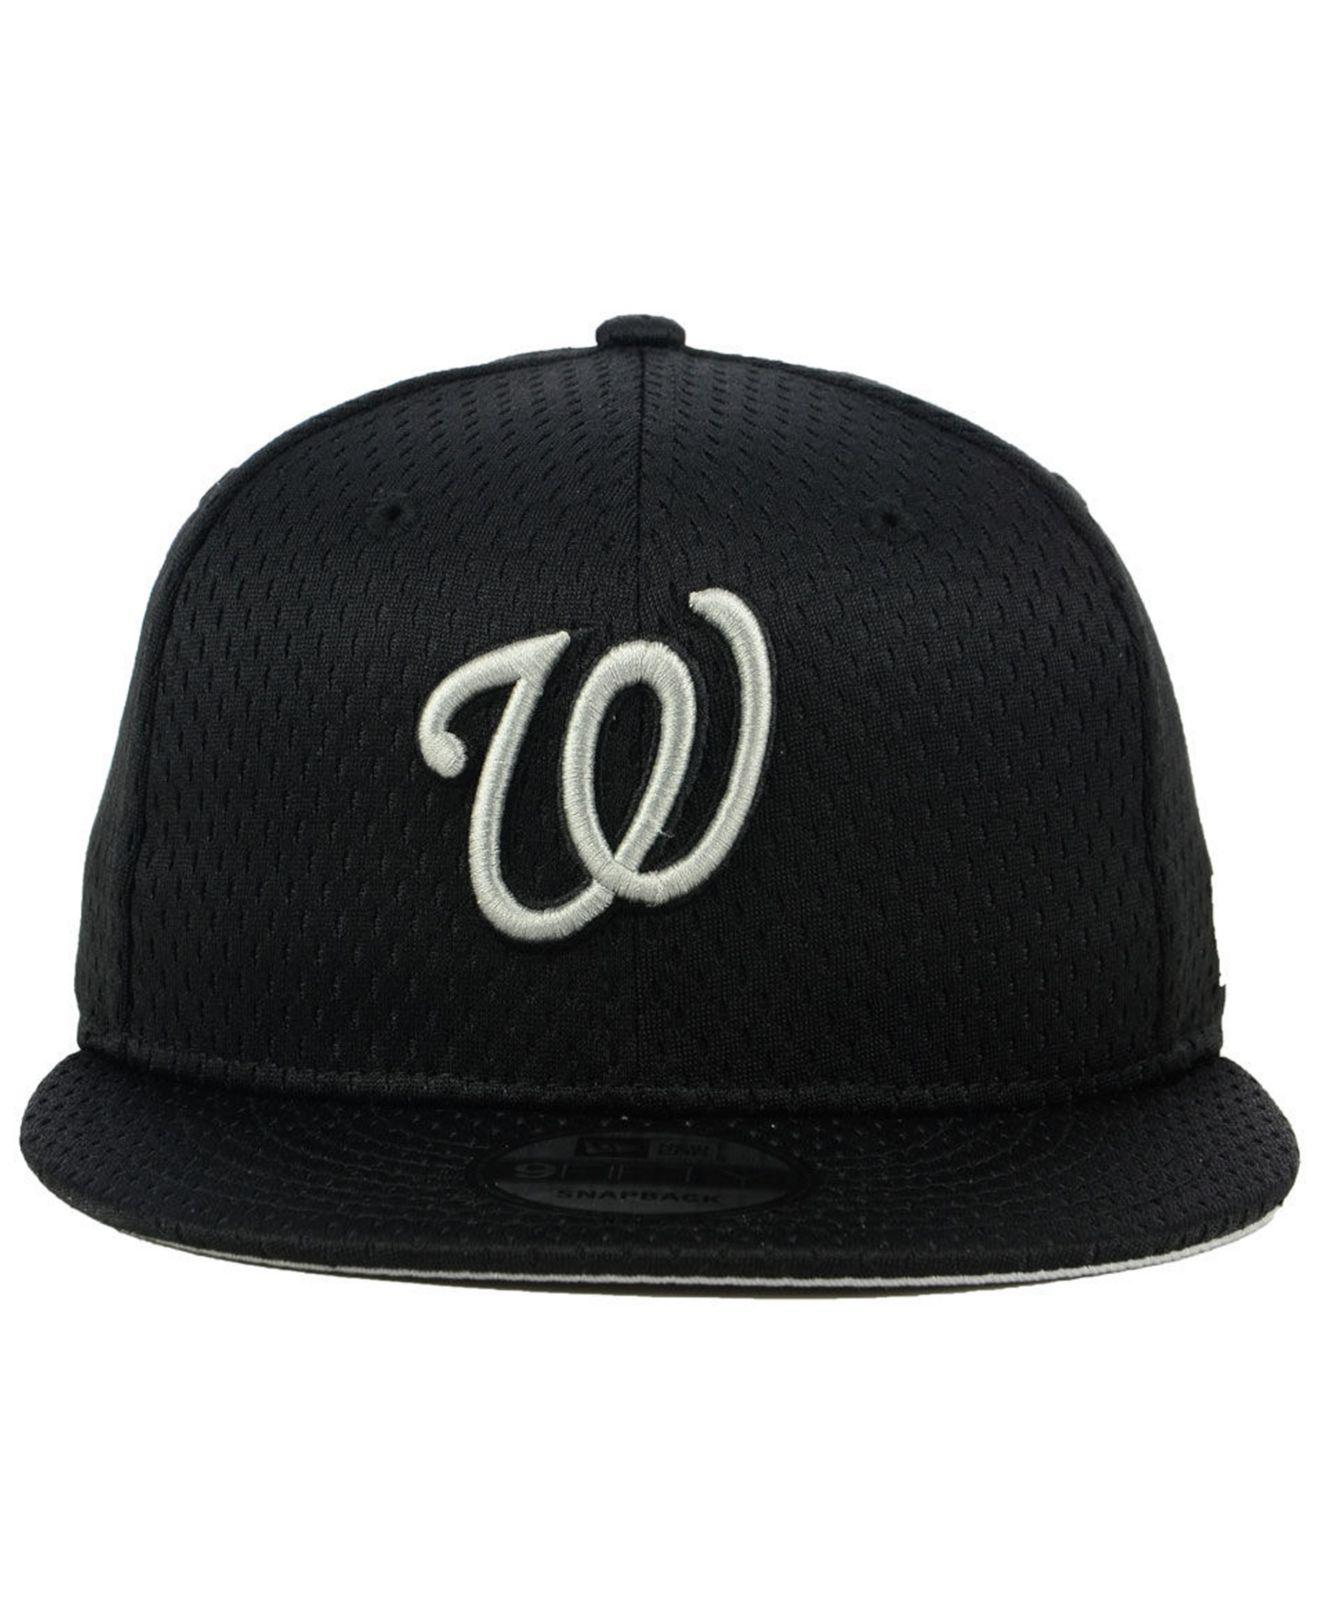 online store 454d6 b7025 Lyst - KTZ Washington Nationals Batting Practice Mesh 9fifty Snapback Cap  in Black for Men